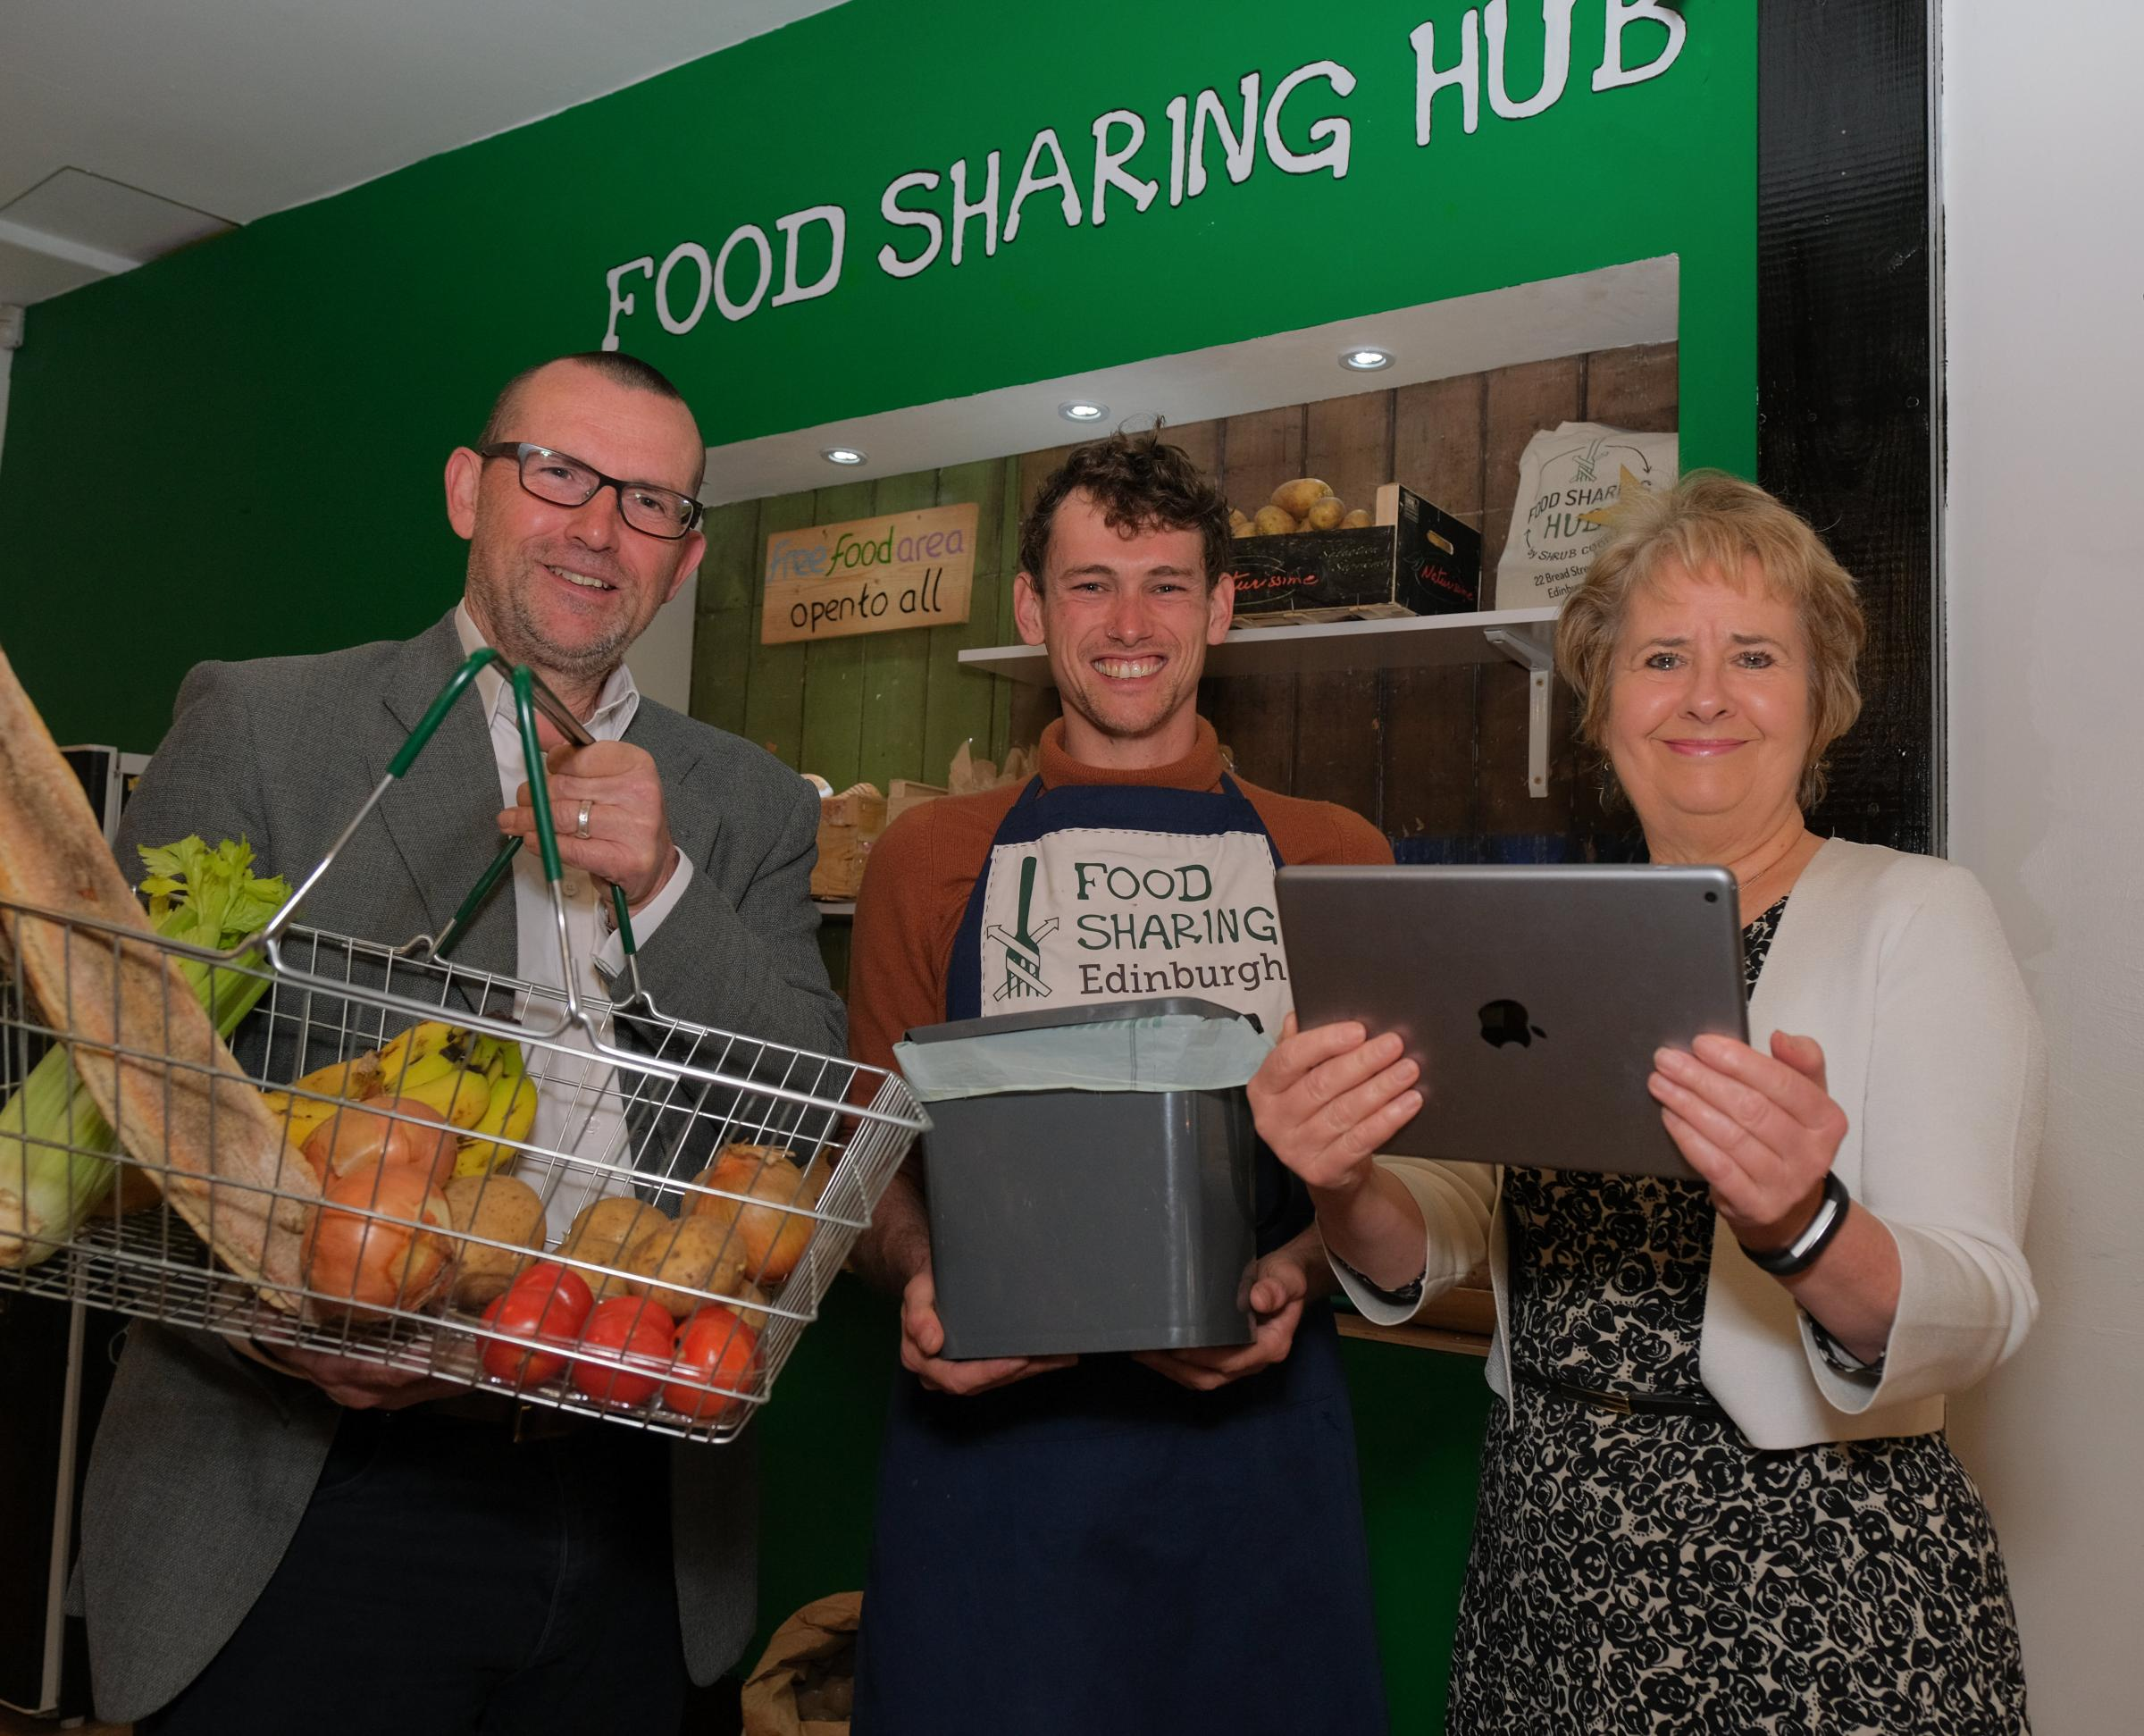 New Scotland-wide campaign to cut food waste and curb climate change